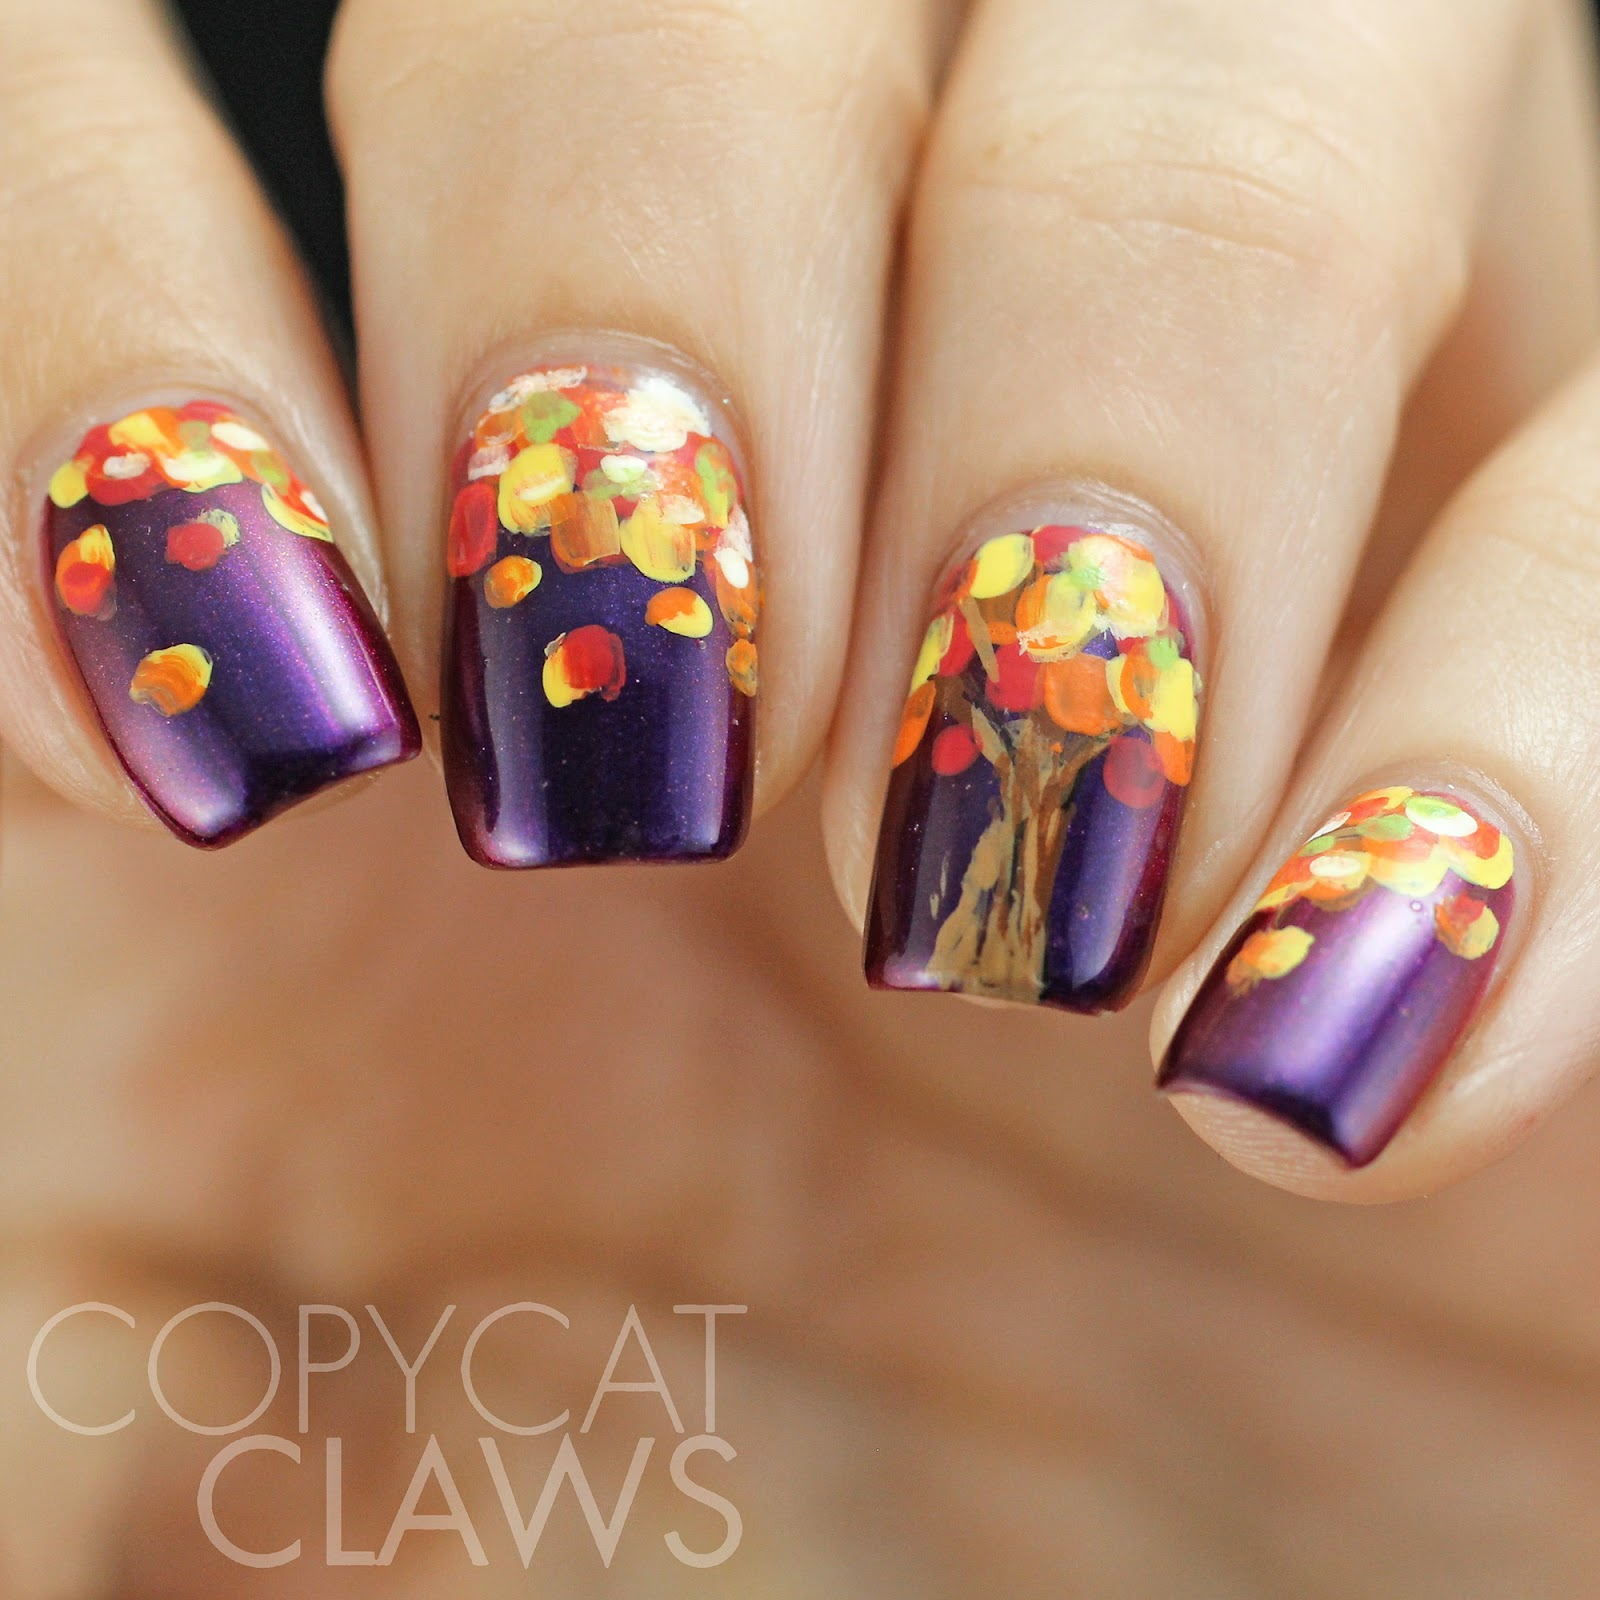 Last Autumn Nail Art Of The Year: Copycat Claws: September 2015